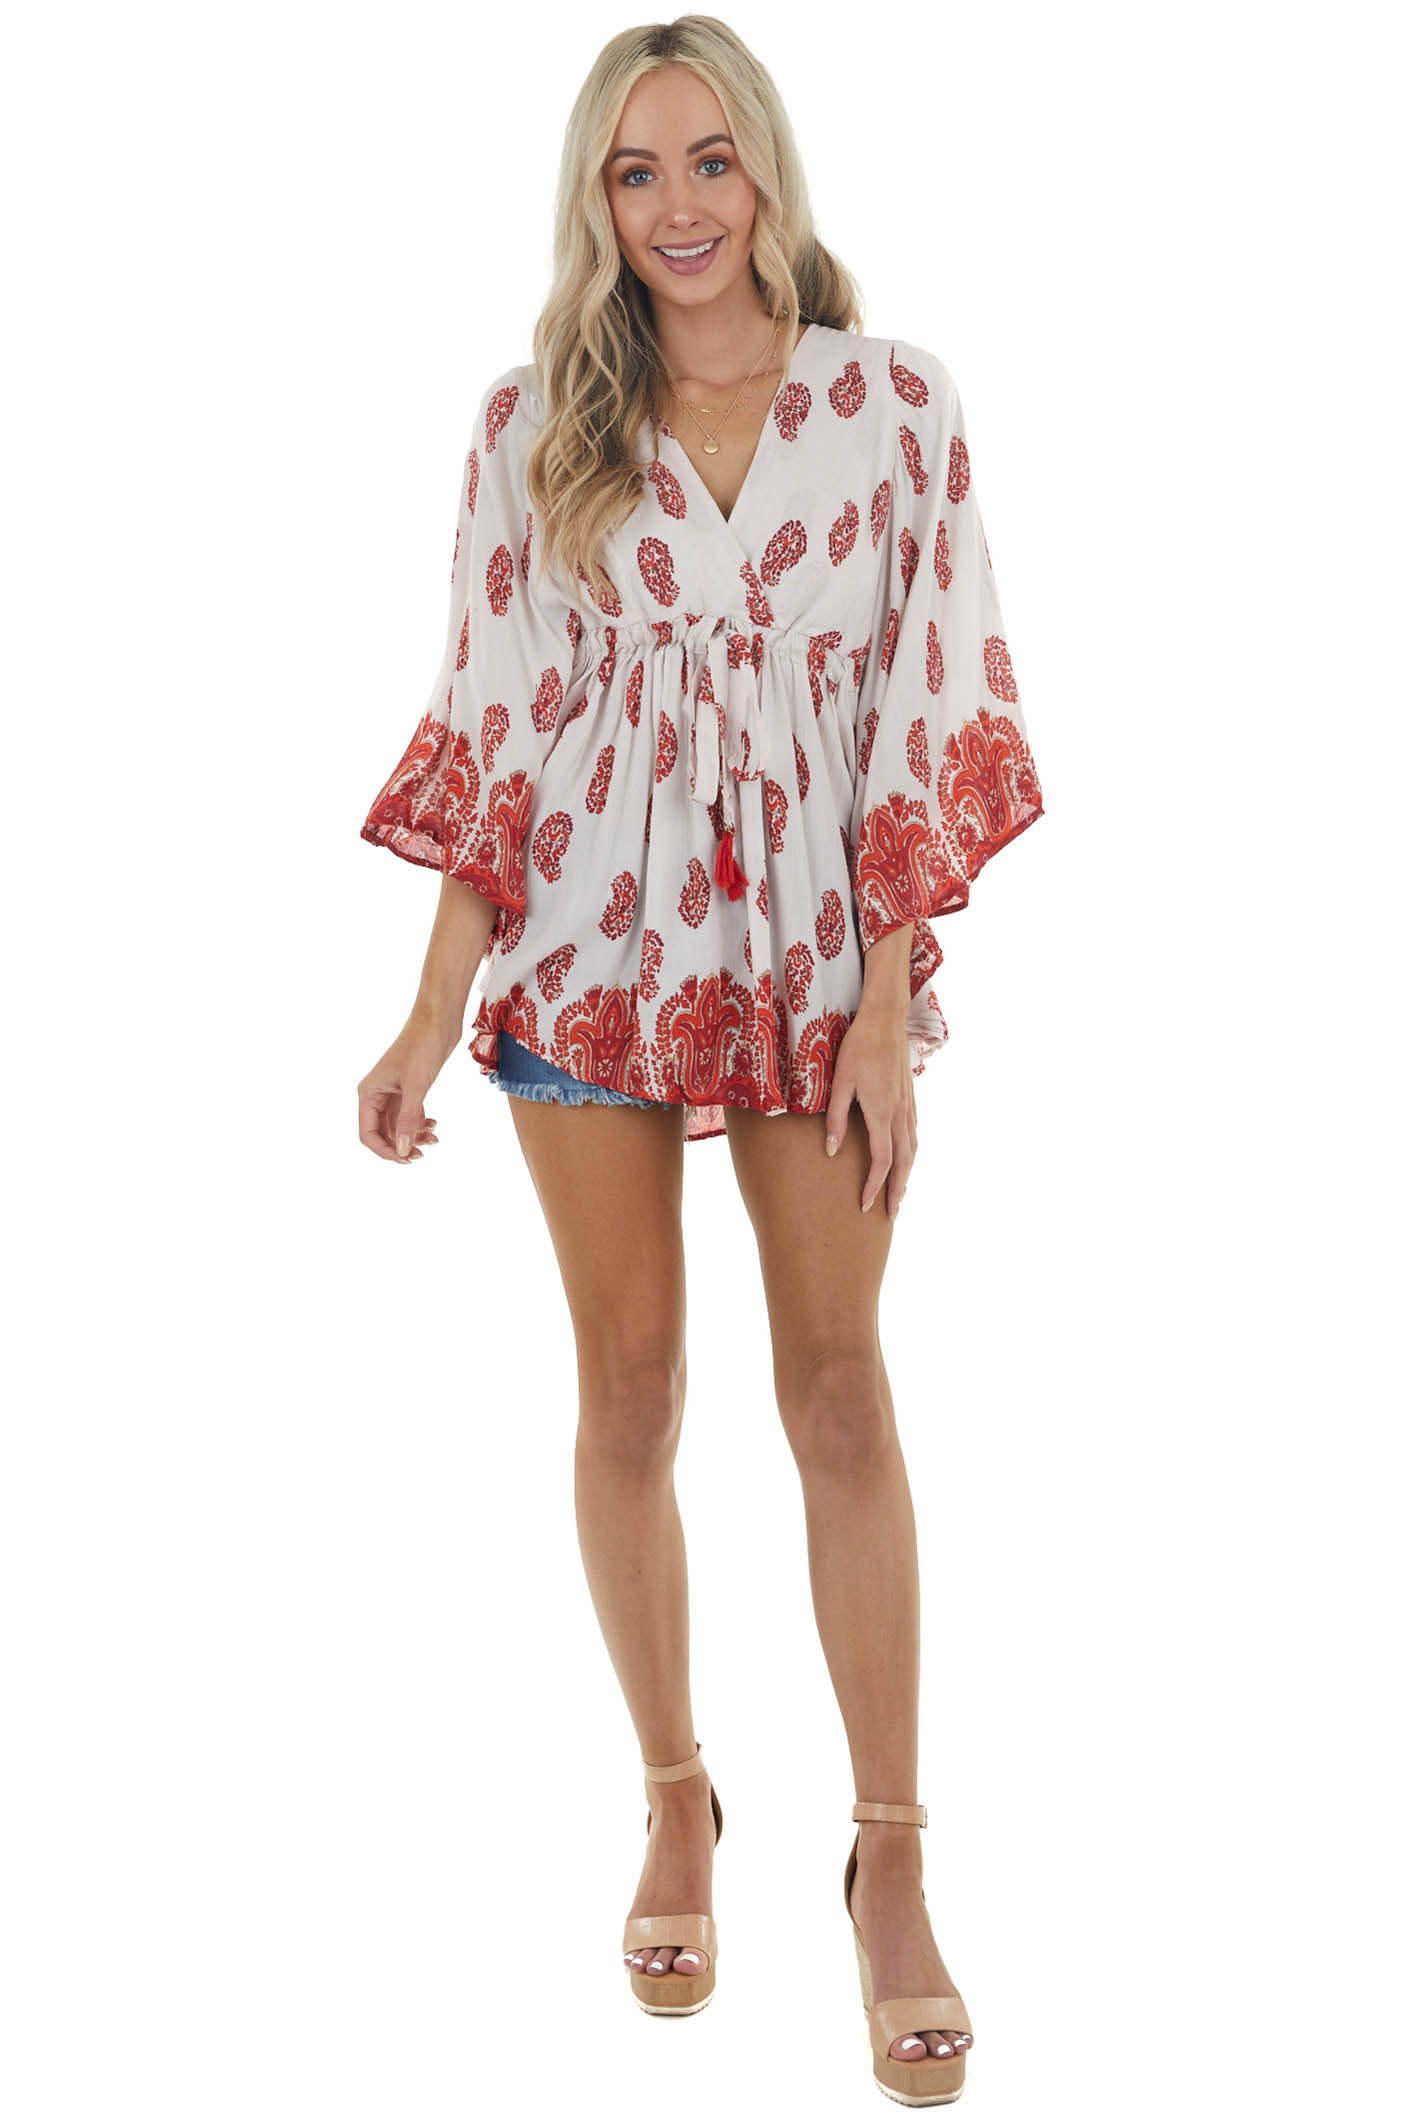 Vanilla Printed Surplice Top with Waist Tie and Tassel Details